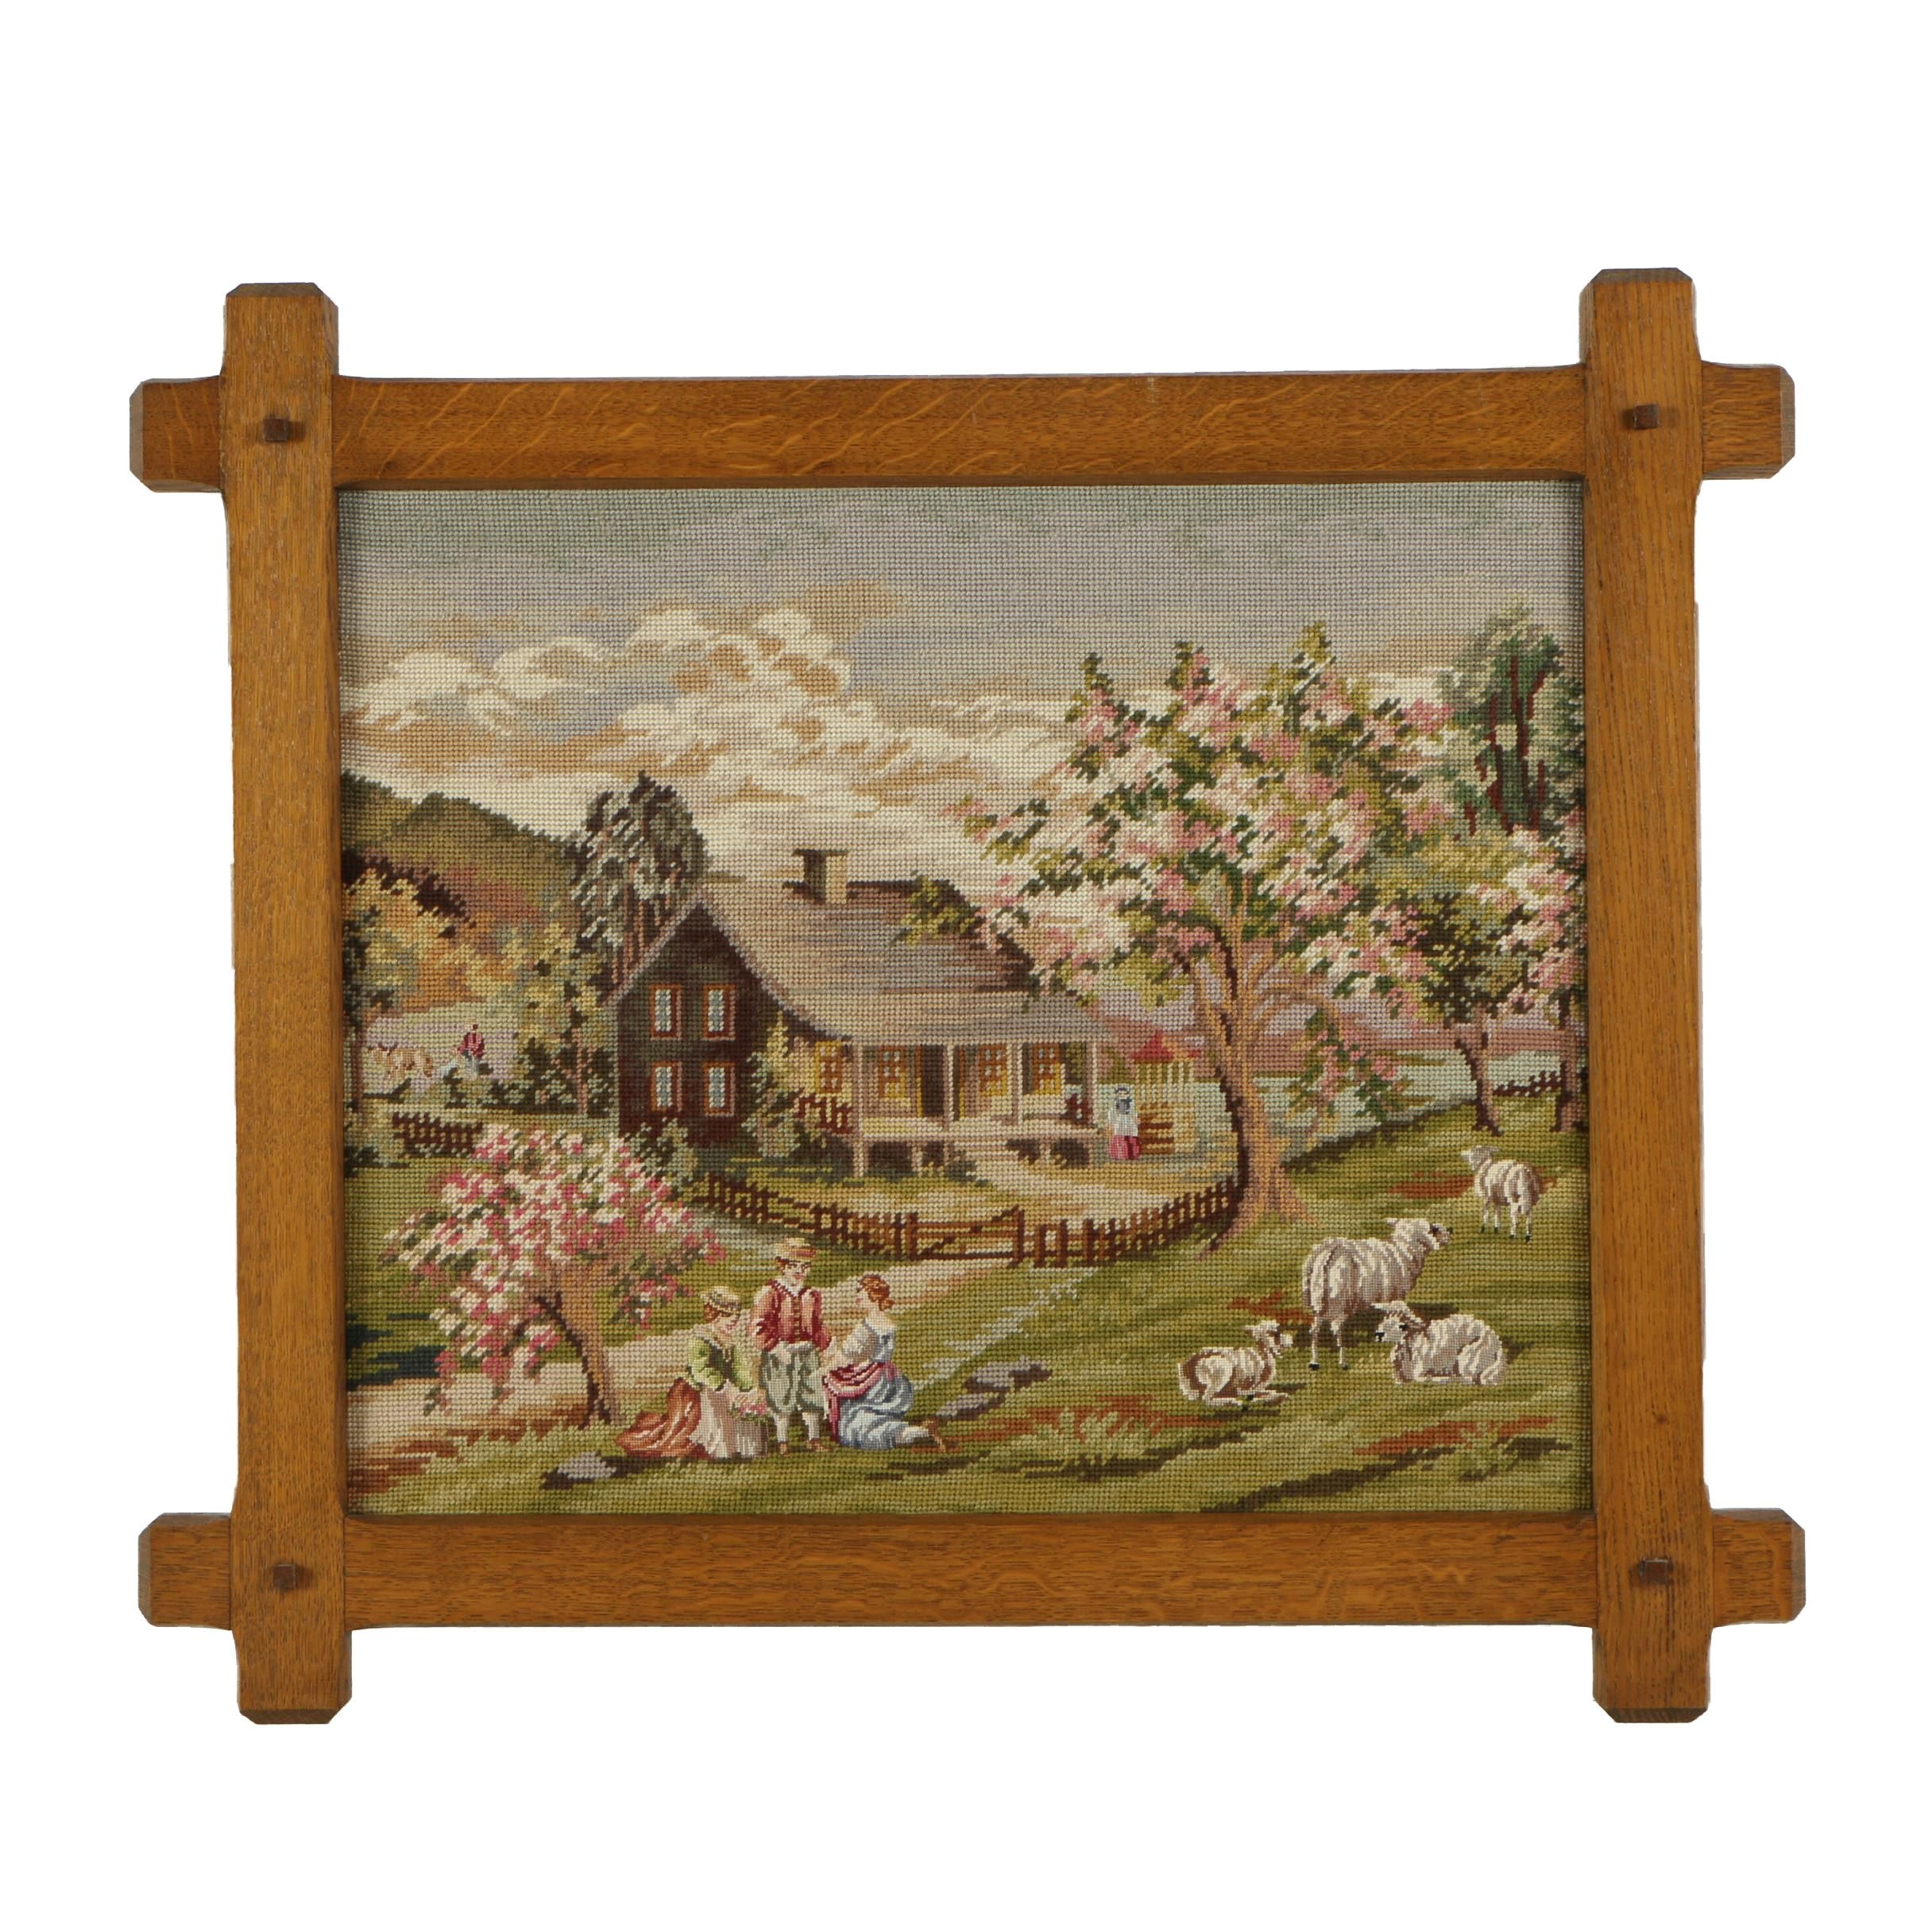 Needlepoint Embroidery of Farm Landscape